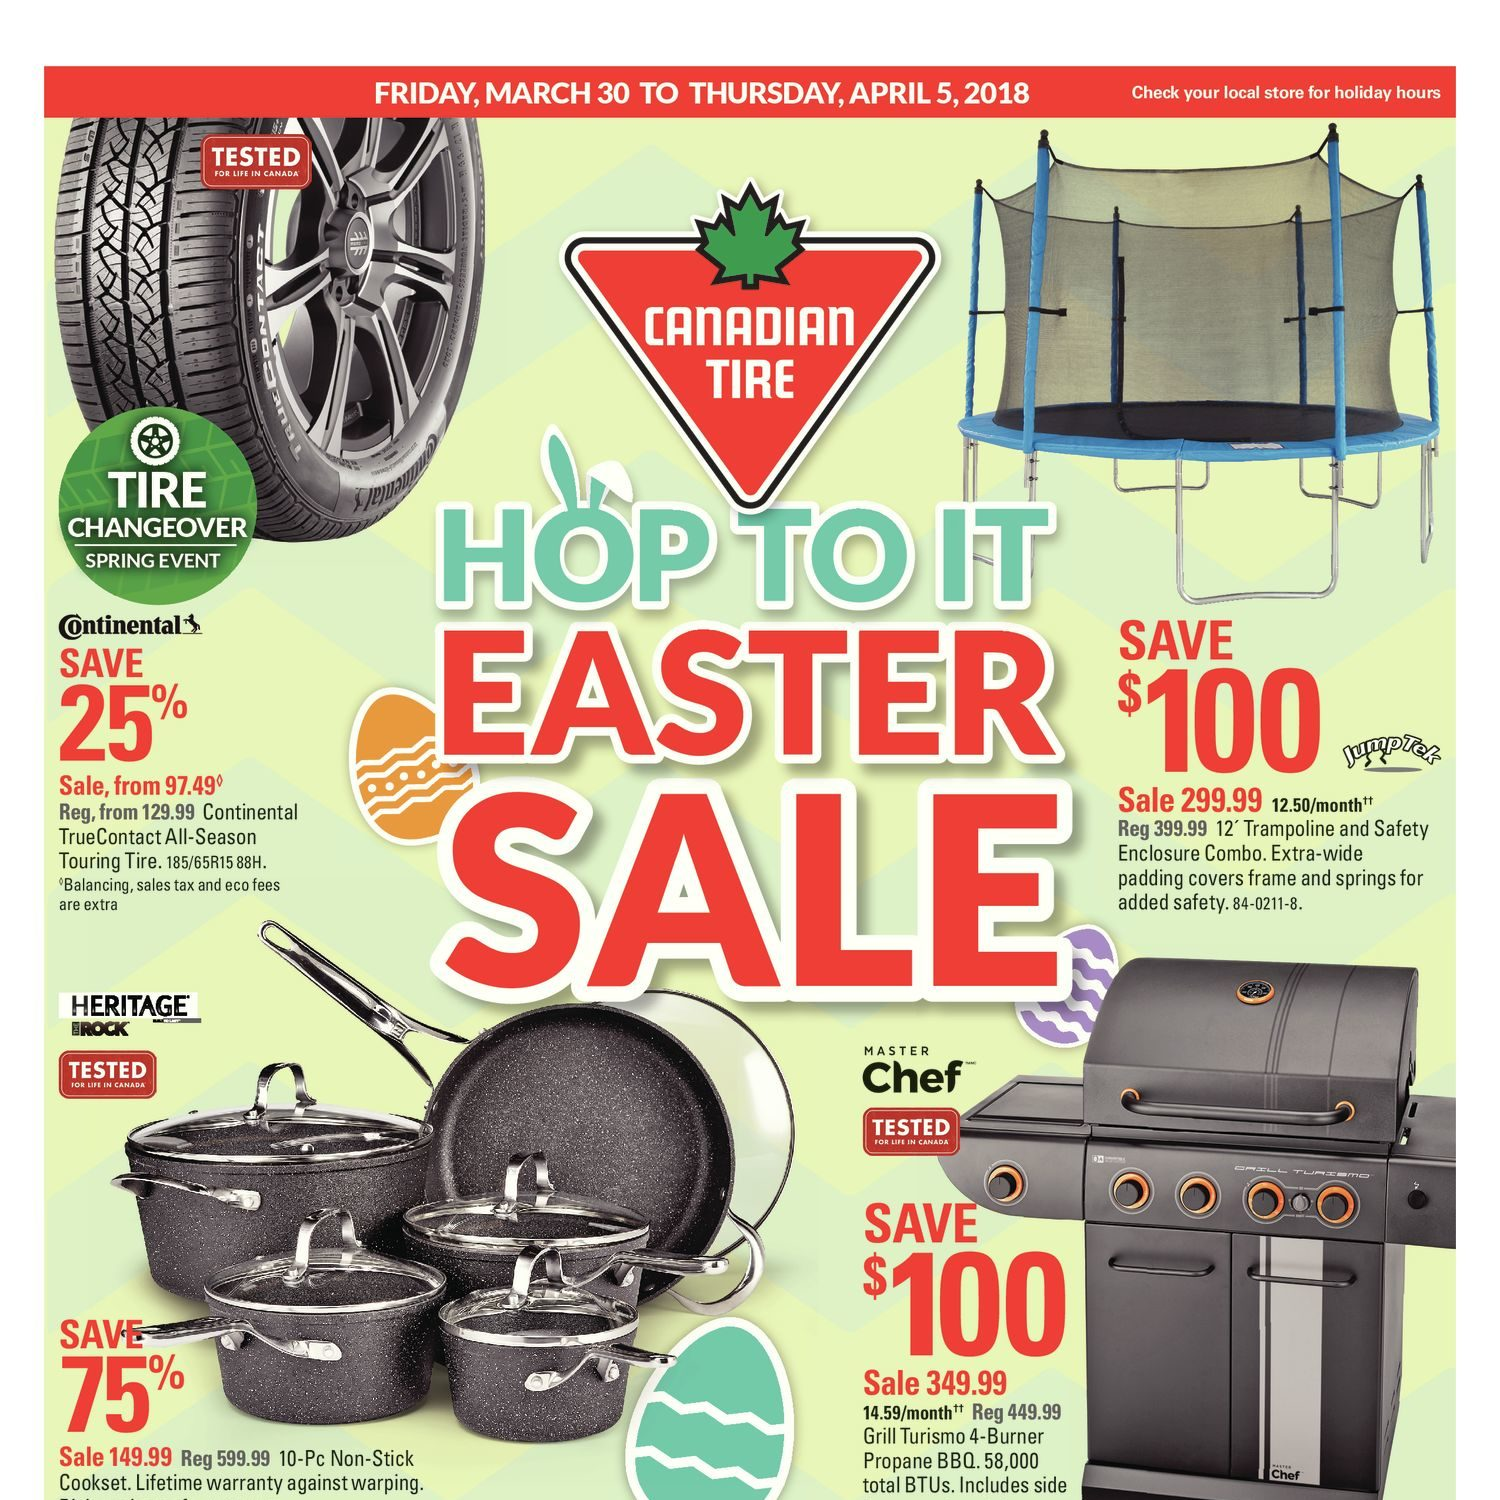 Canadian Tire Weekly Flyer Weekly Hop To It Easter Sale Mar 30